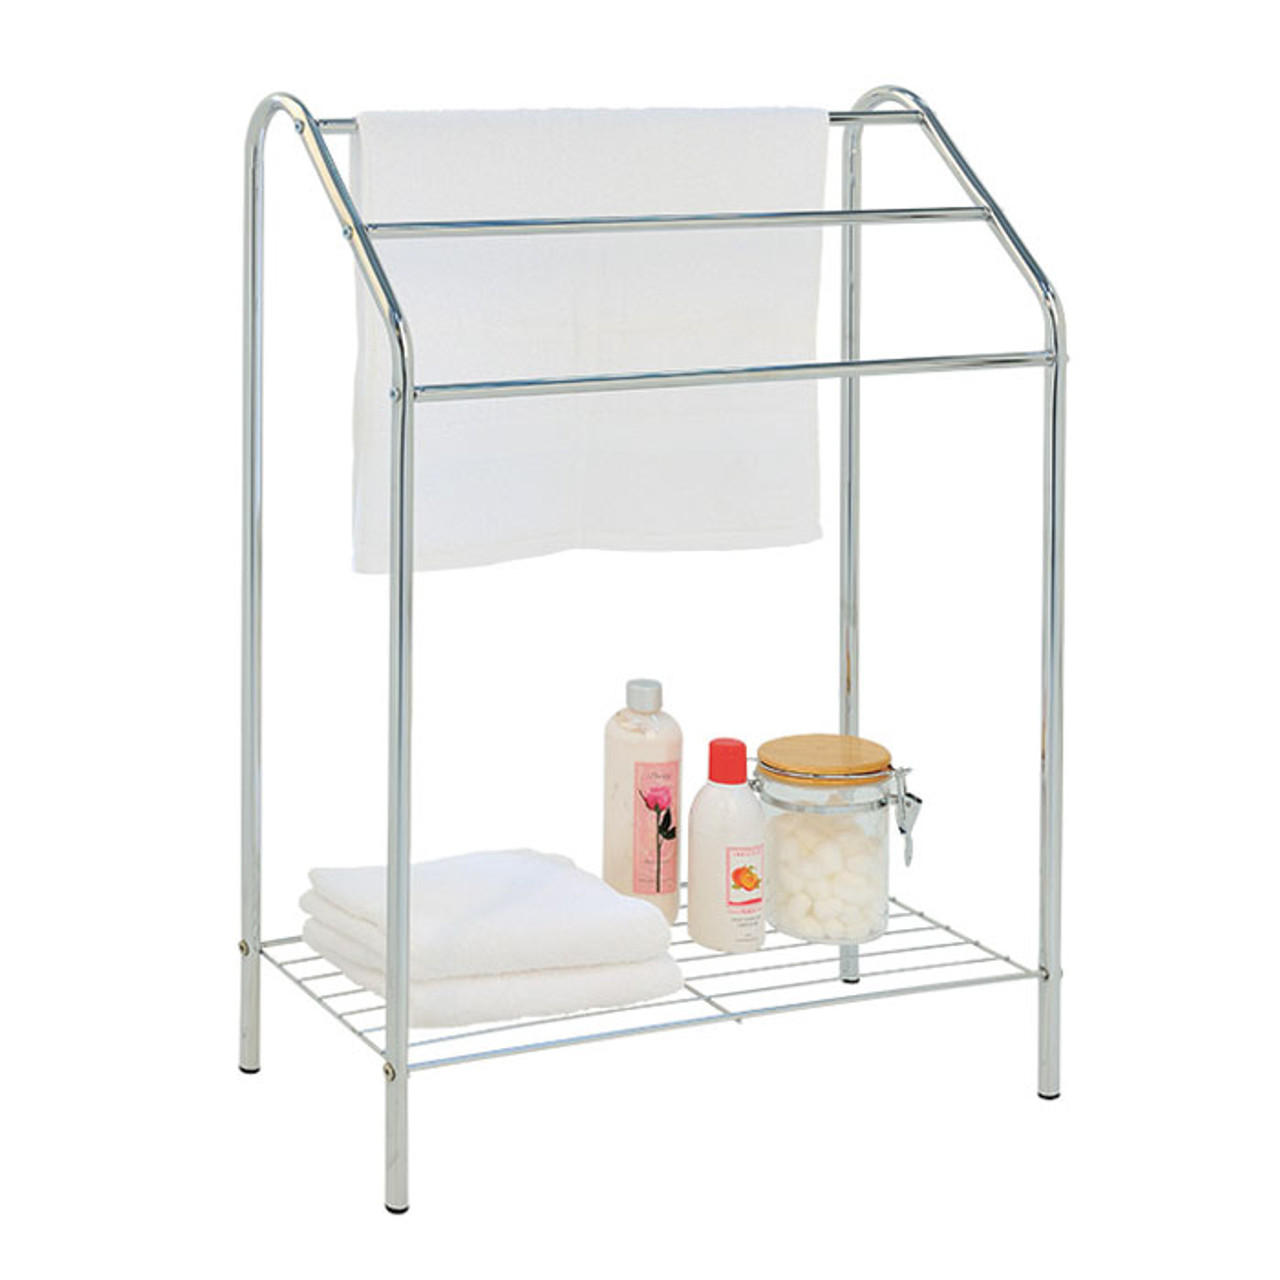 Towel Rack Solutions Your Organized Living Store